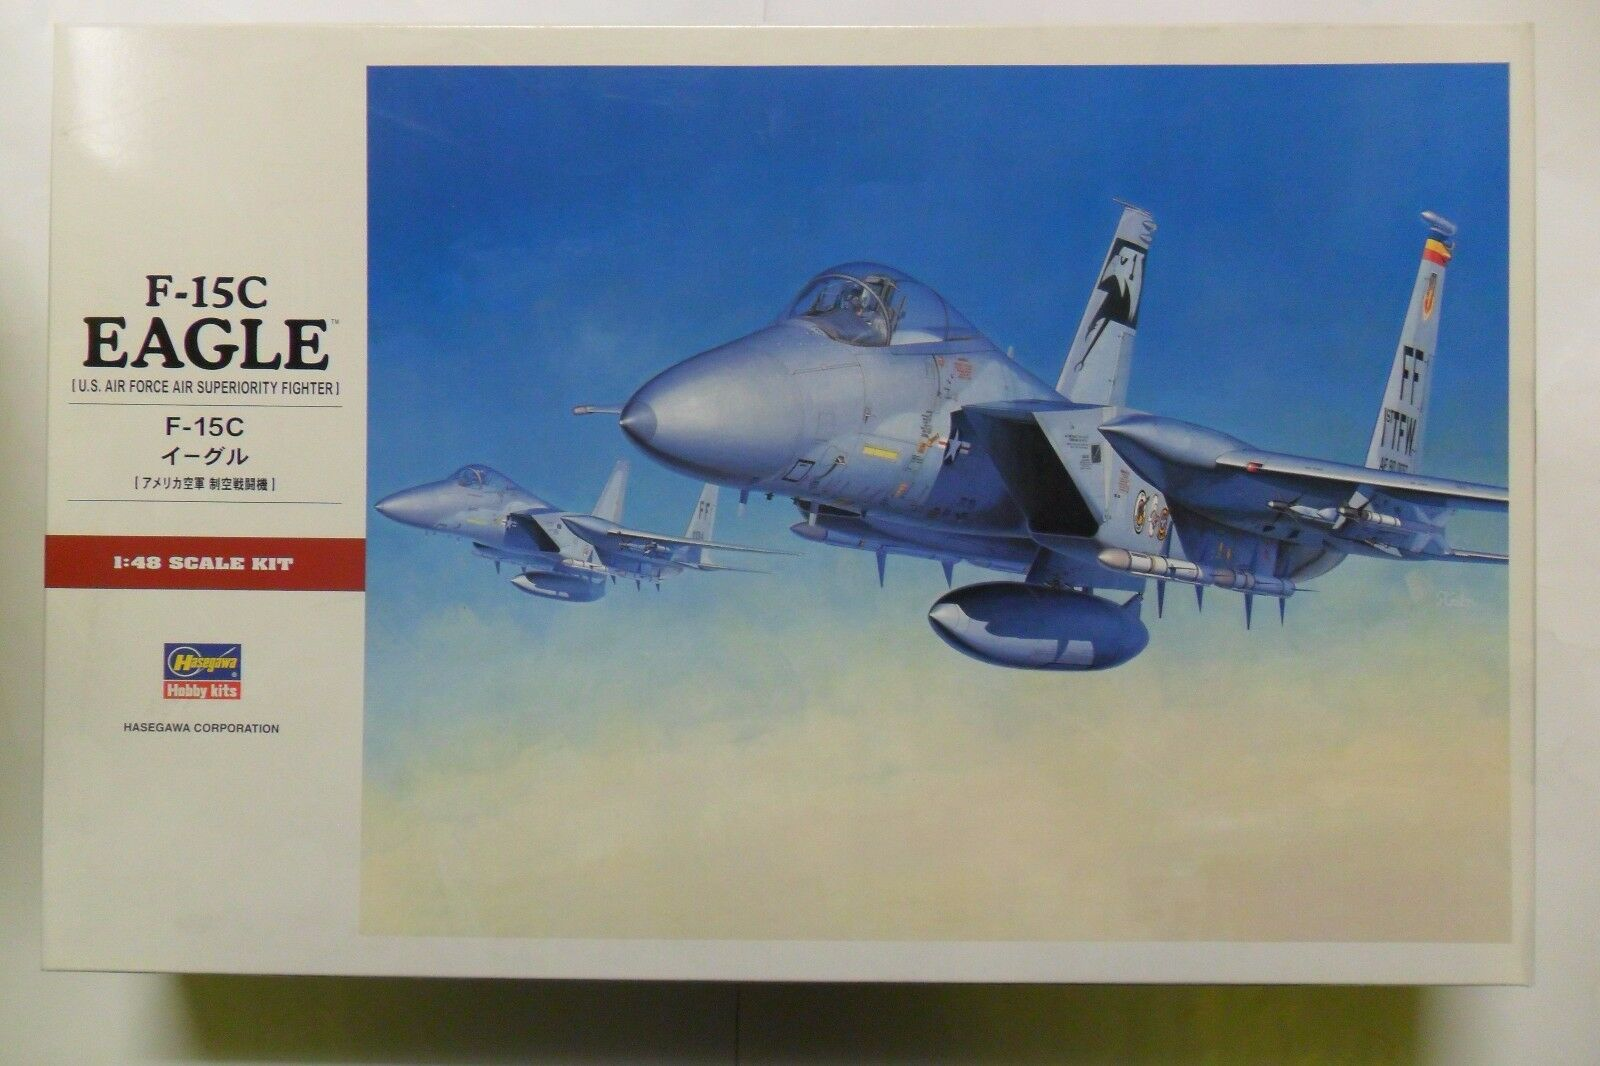 HASEGAWA 1 48 KIT AEREO 15C EAGLE US AIR FORCE AIR SUPERIORITY FIGHTER ART 07249